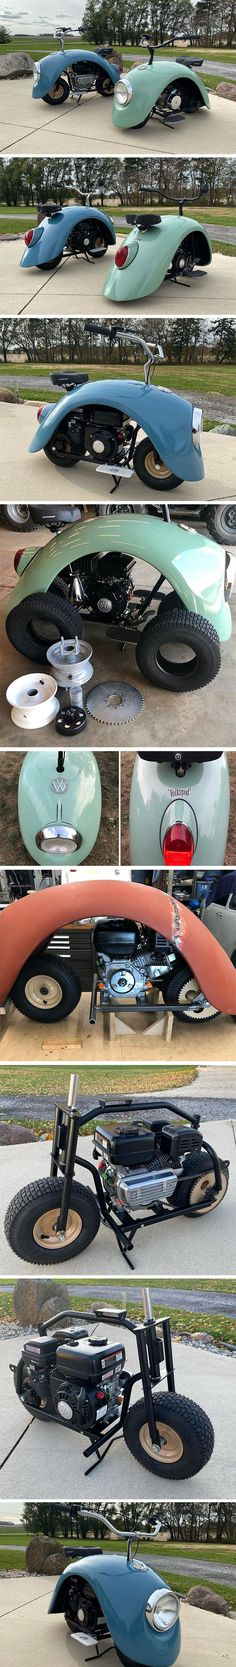 The original Volkswagen Beetle repurposed to create a fashionably old-fashioned mini bike! Mini Motorbike, Mini Bike, Motorcycle, Design Transport, Nighttime Sky, Old Car Parts, Bmw Series, Vespa Scooters, Trains